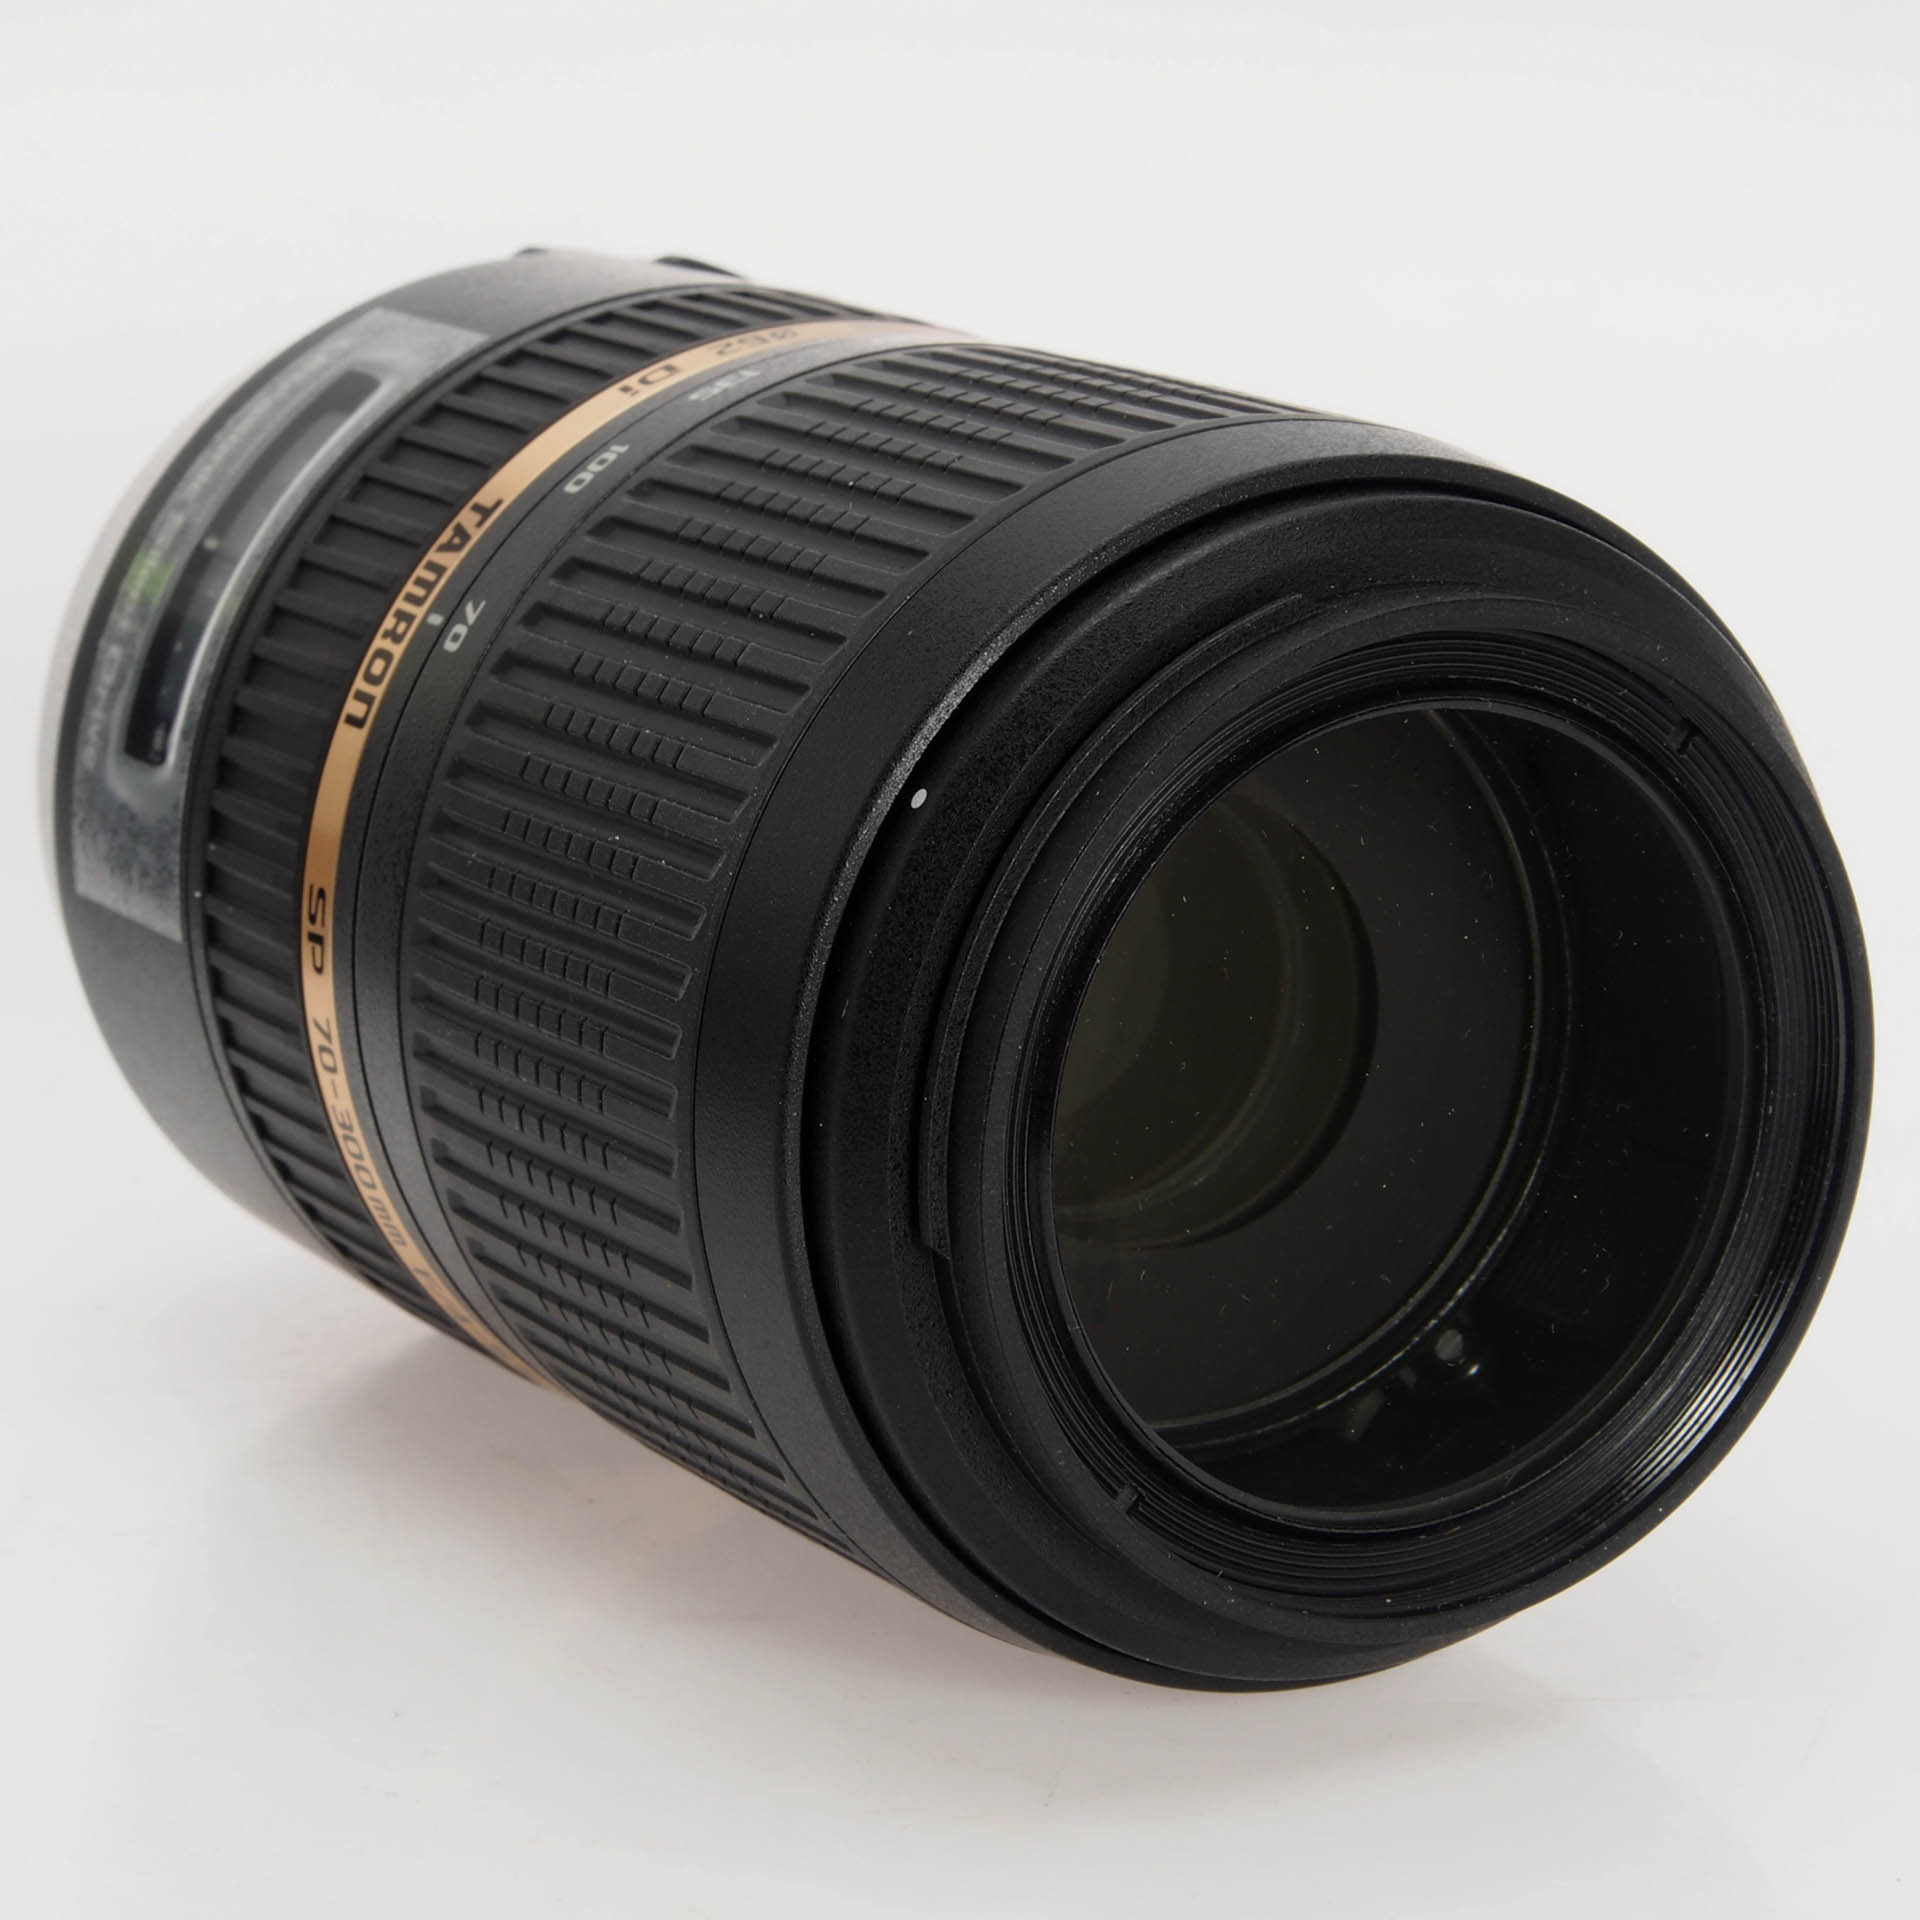 Dslr Lenses National Camera Exchange Tamron For Canon 18 200mm F 35 63 Di Iii Vc Eos M Sony A Sp 70 300mm F45 56 Usd Afa005s Refurbished